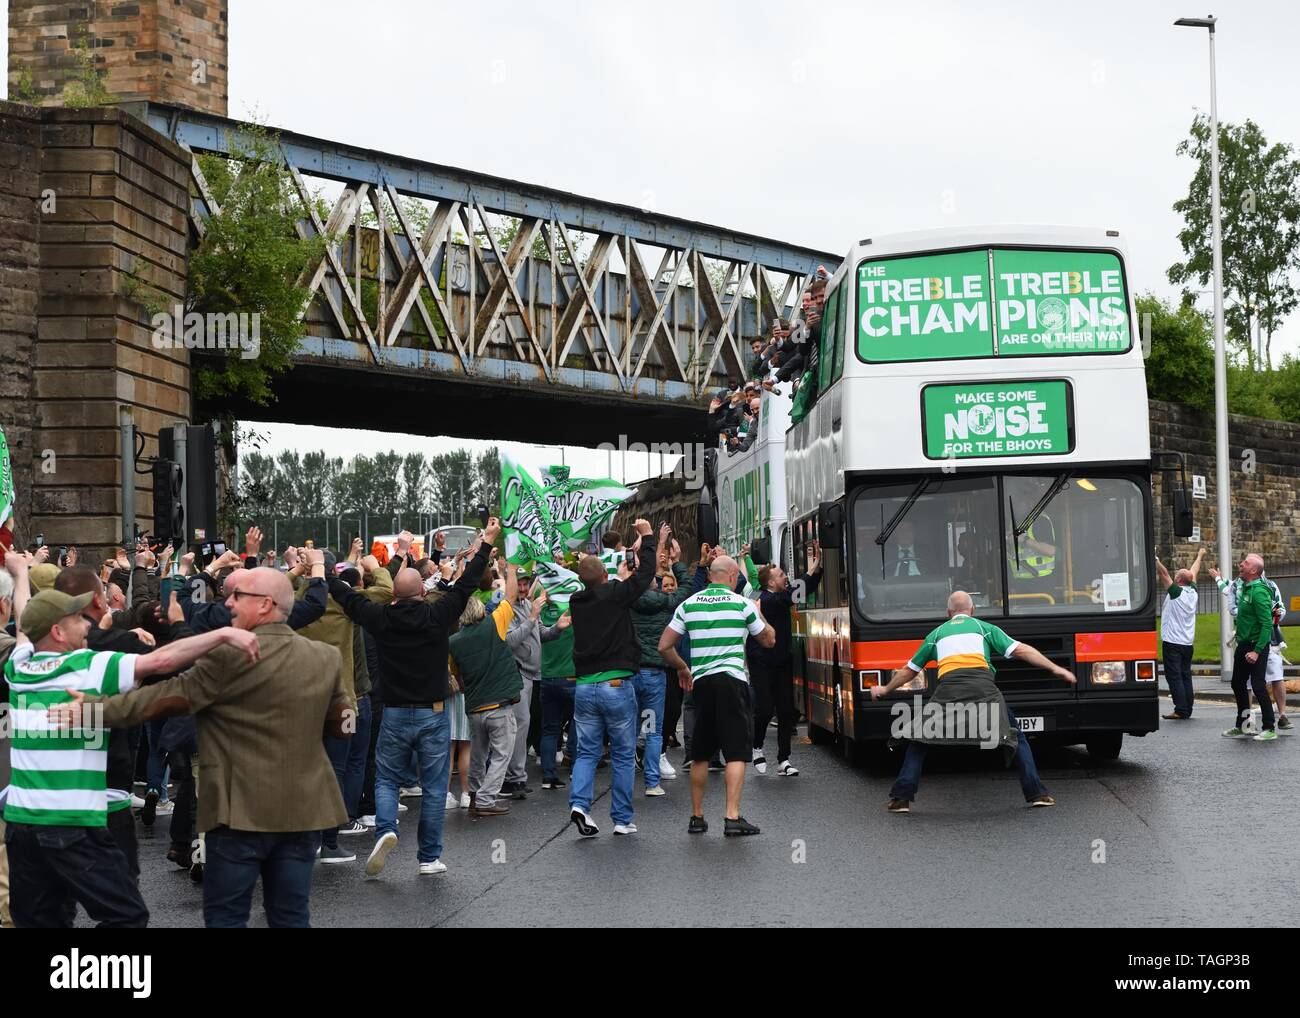 25th May, 2019. Glasgow, Scotland, UK, Europe. Scottish Cup winners, Celtic Football Club fans celebrate their teams achievement of three consecutive seasons winning all domestic trophies. The first time a domestic club has completed the triple treble in world football. Pictured are the players and staff aboard open top buses surrounded by exuberant fans Stock Photo